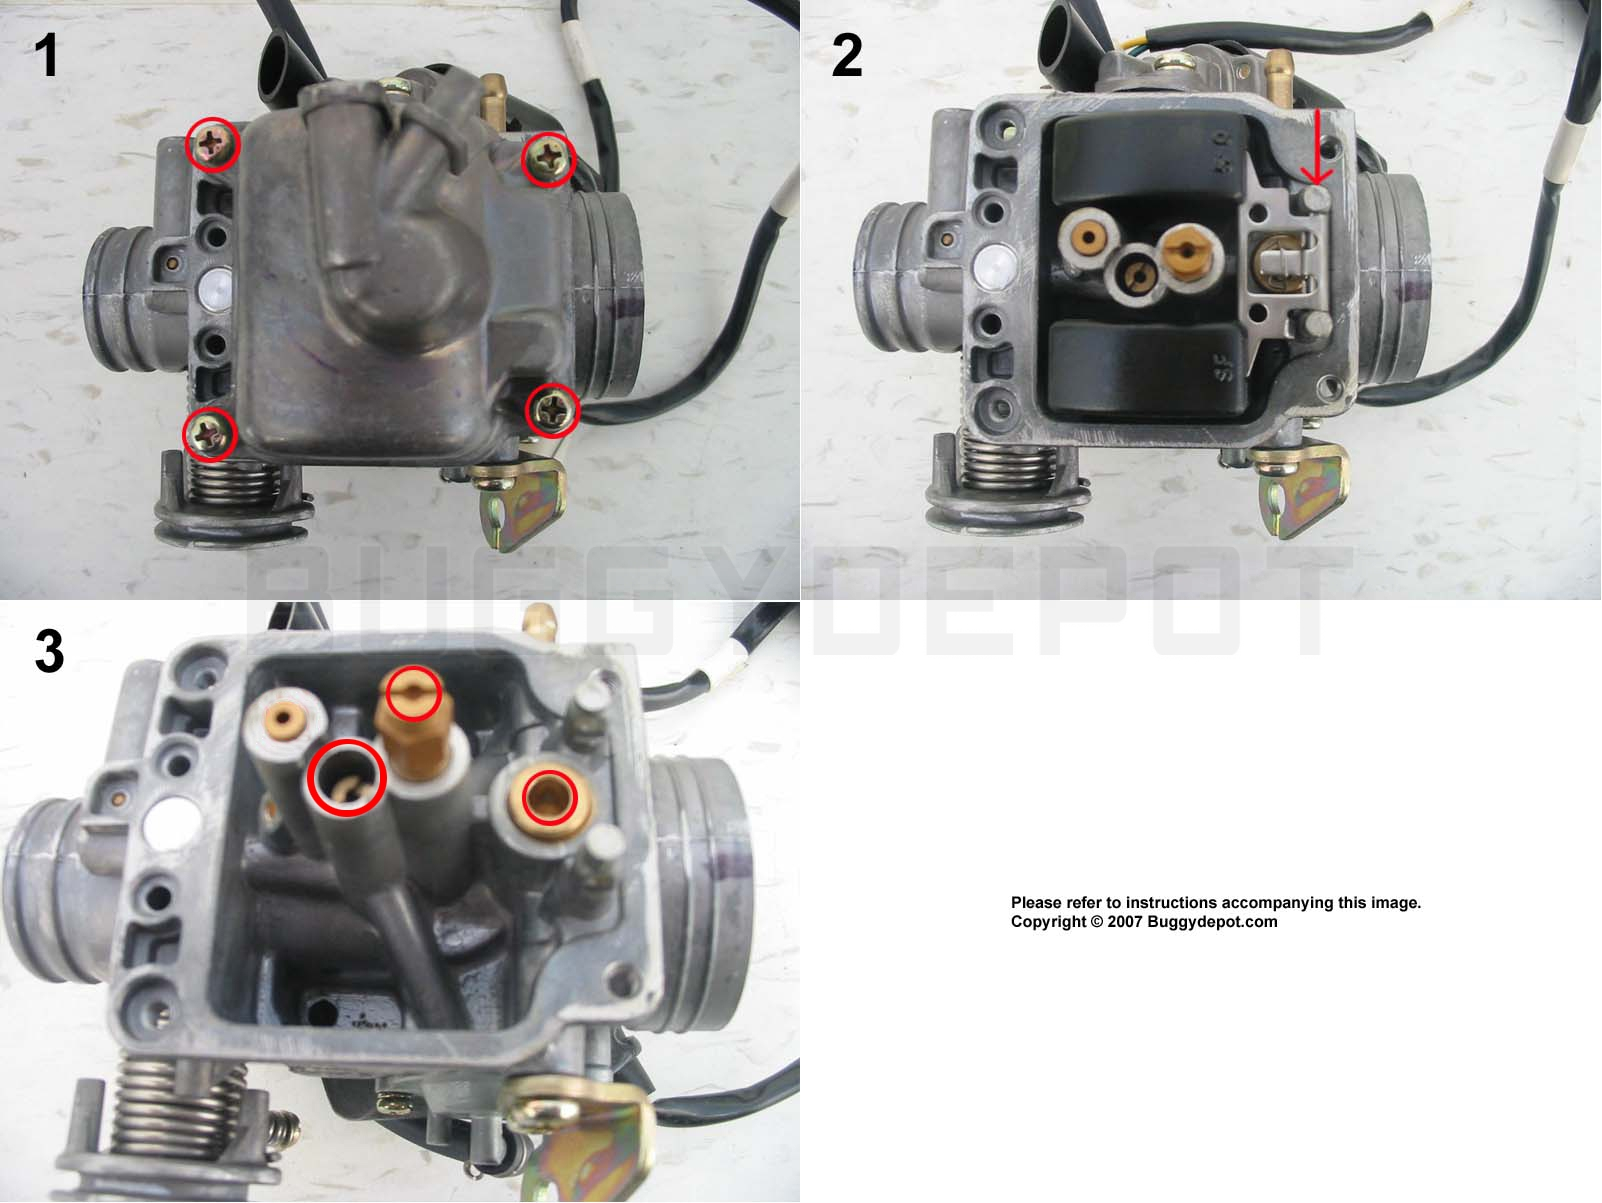 hight resolution of 150cc gy6 carburetor cleaning guide buggy depot technical center rh buggydepot com gy6 150cc carburetor diagram gy6 carburetor diagram